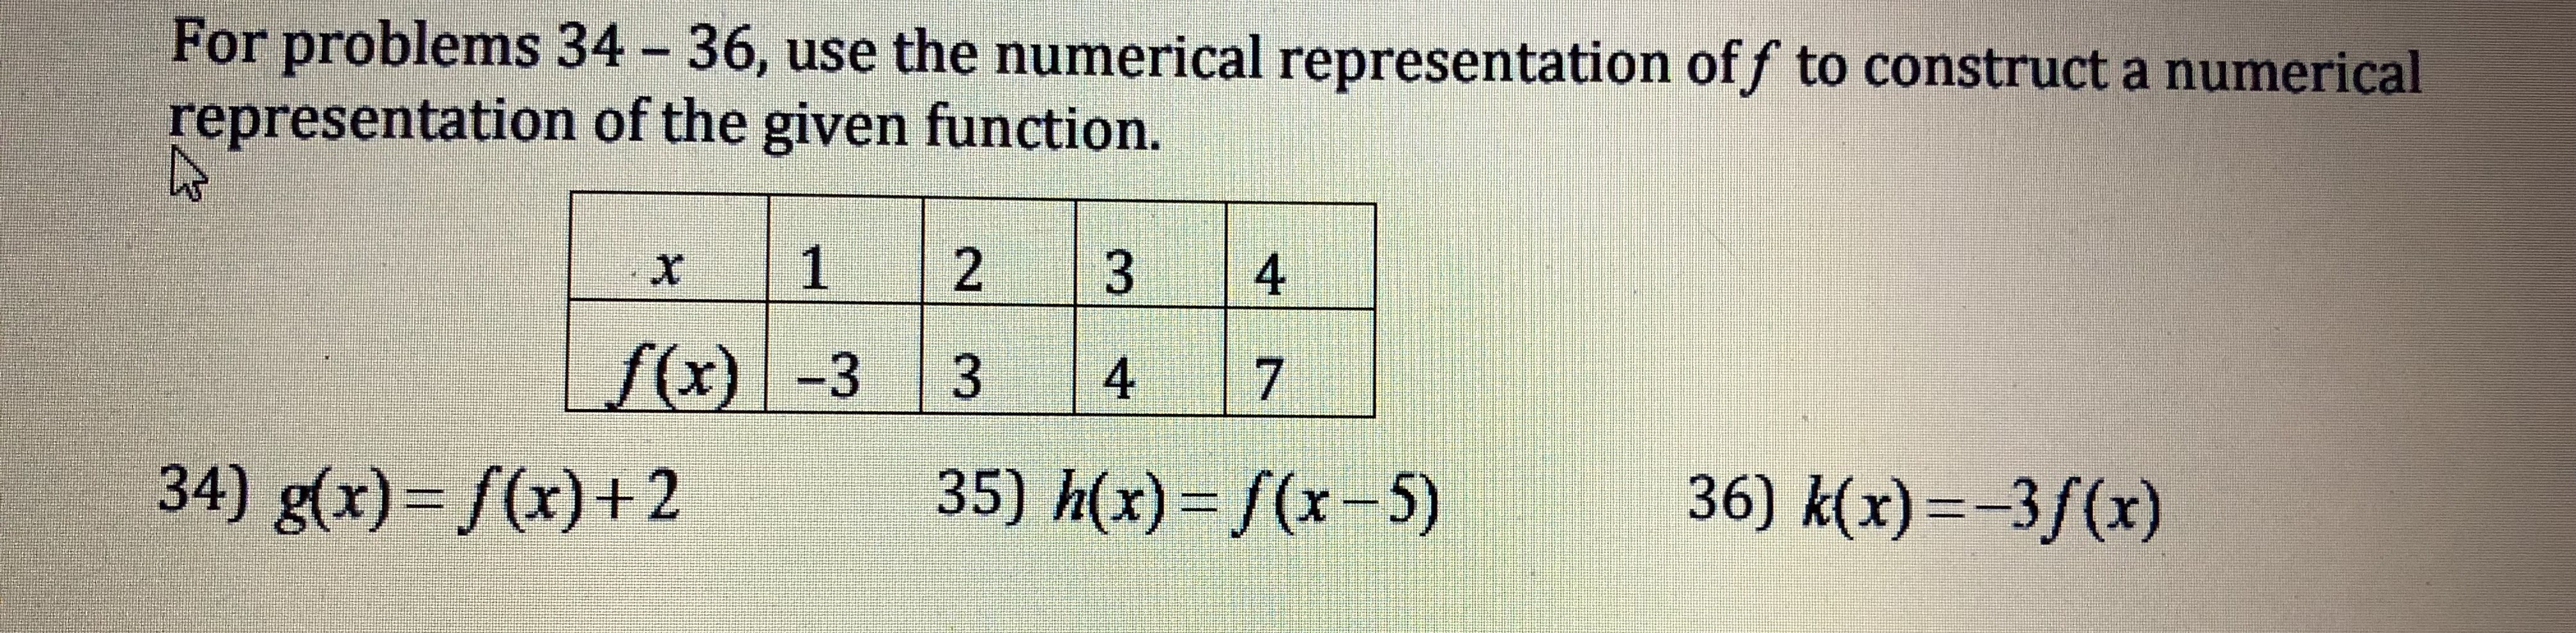 For problems 34 -36, use the numerical representation of f to construct a numerical representation of the given function. 34) g(x) /(x)+2 35) h(x)-/(x -5) 36) k(x)--3f(x)